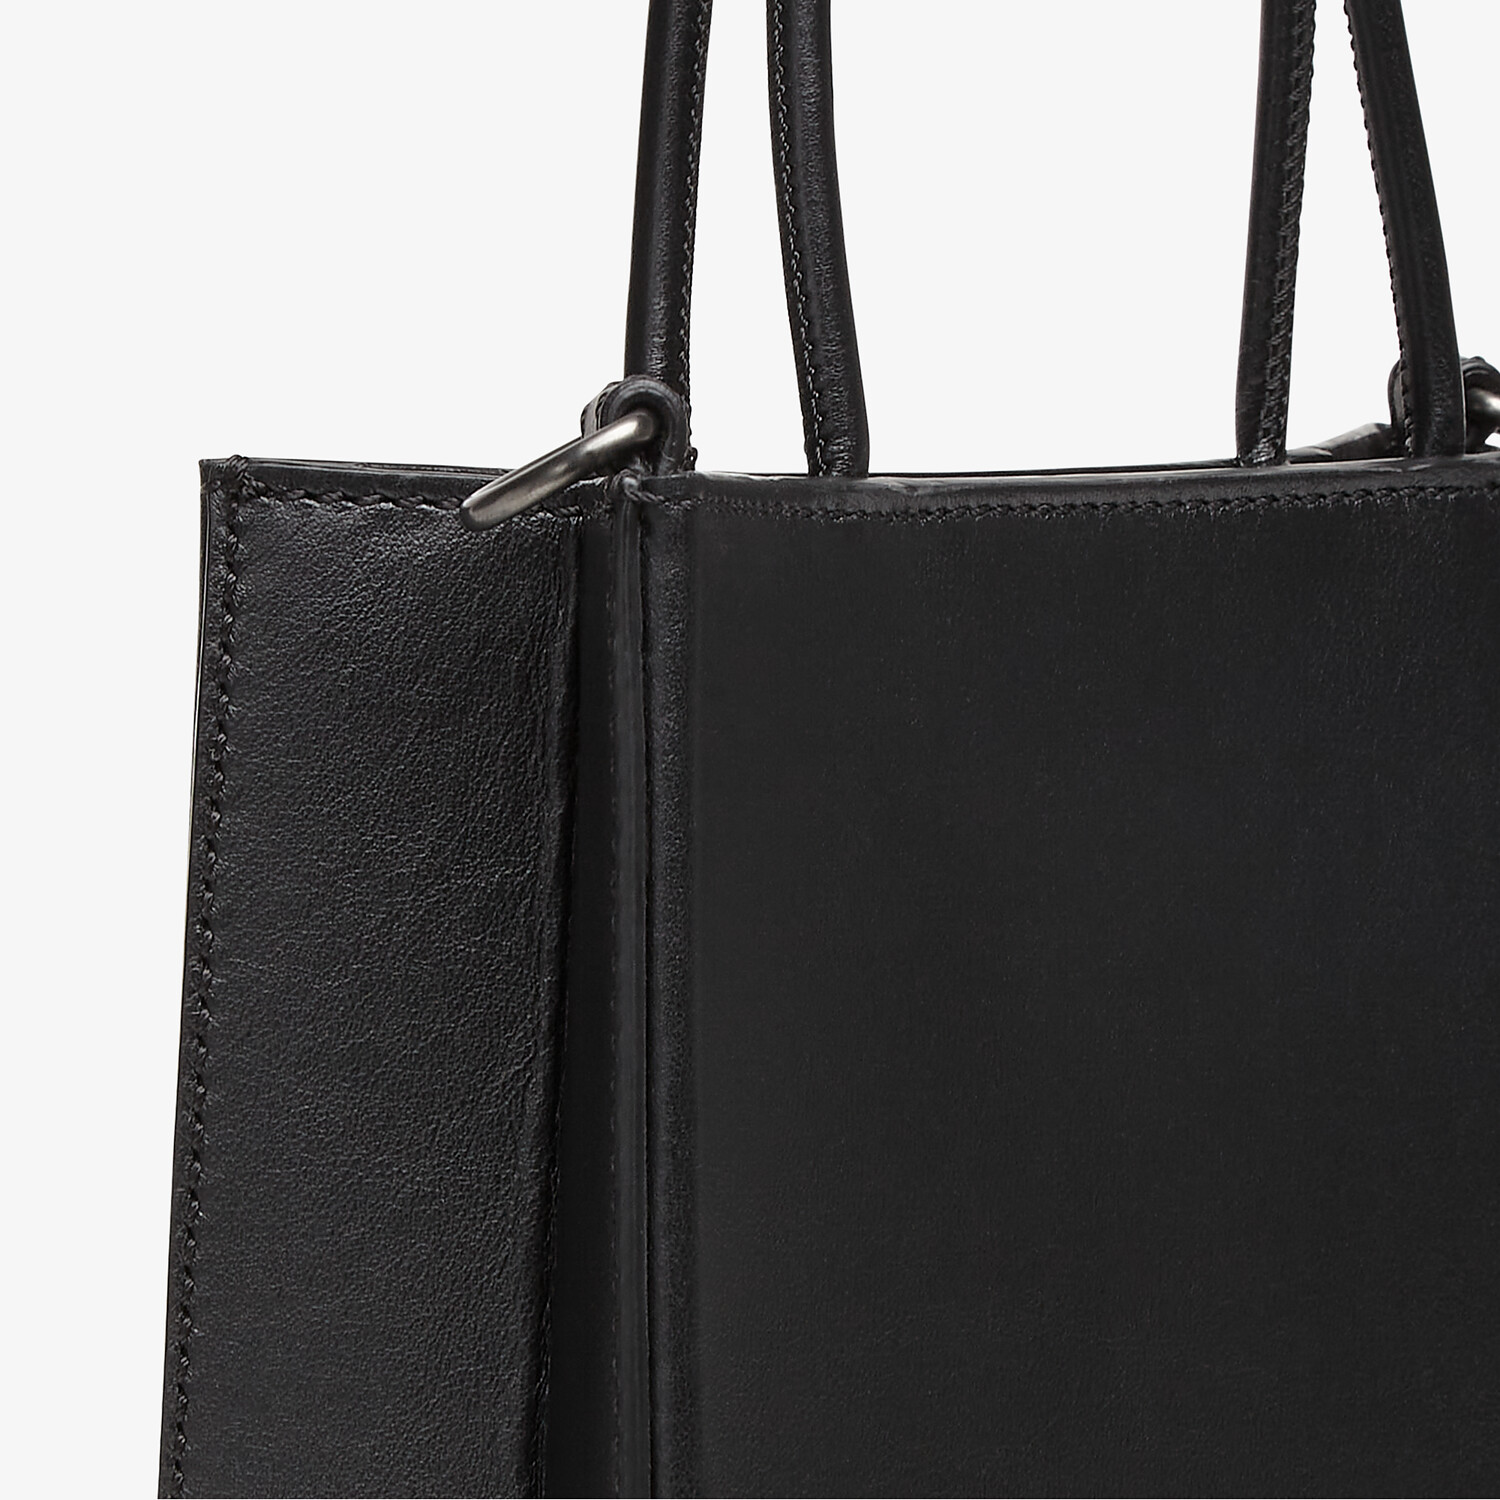 FENDI FENDI PACK SMALL SHOPPING BAG - Black leather bag - view 5 detail